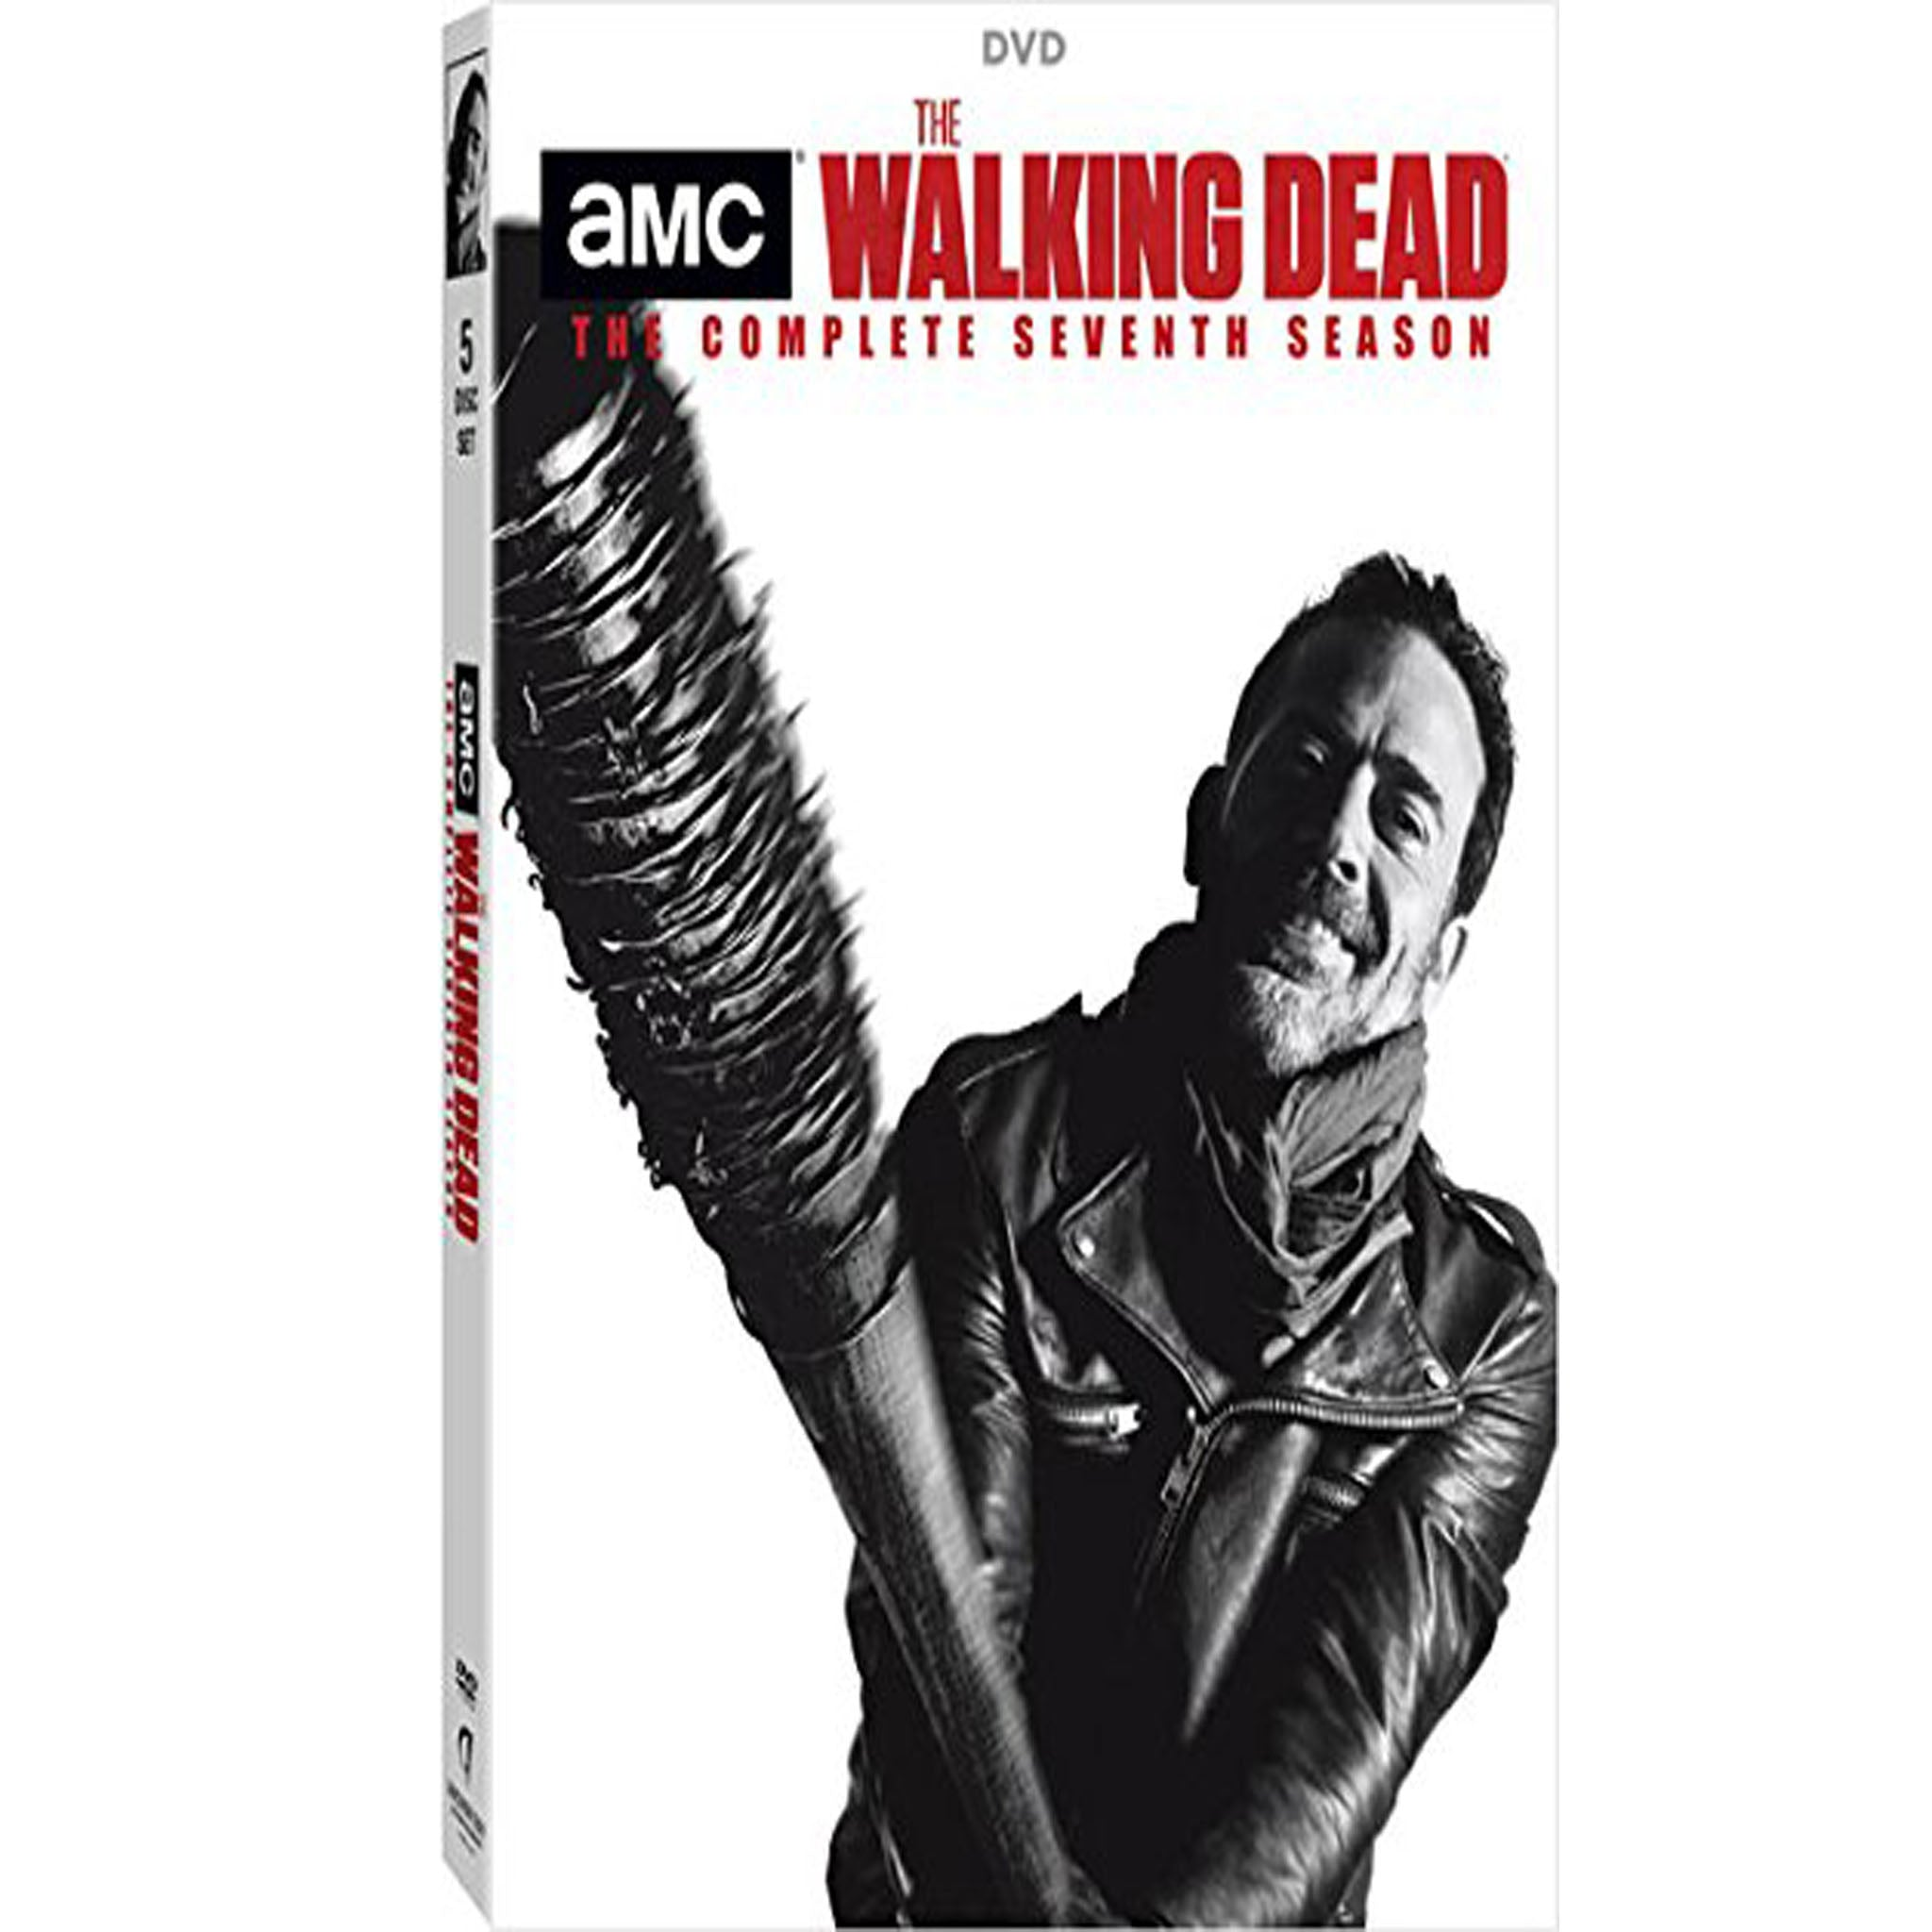 Walking Dead Season 7 (DVD) - DVDsHQ